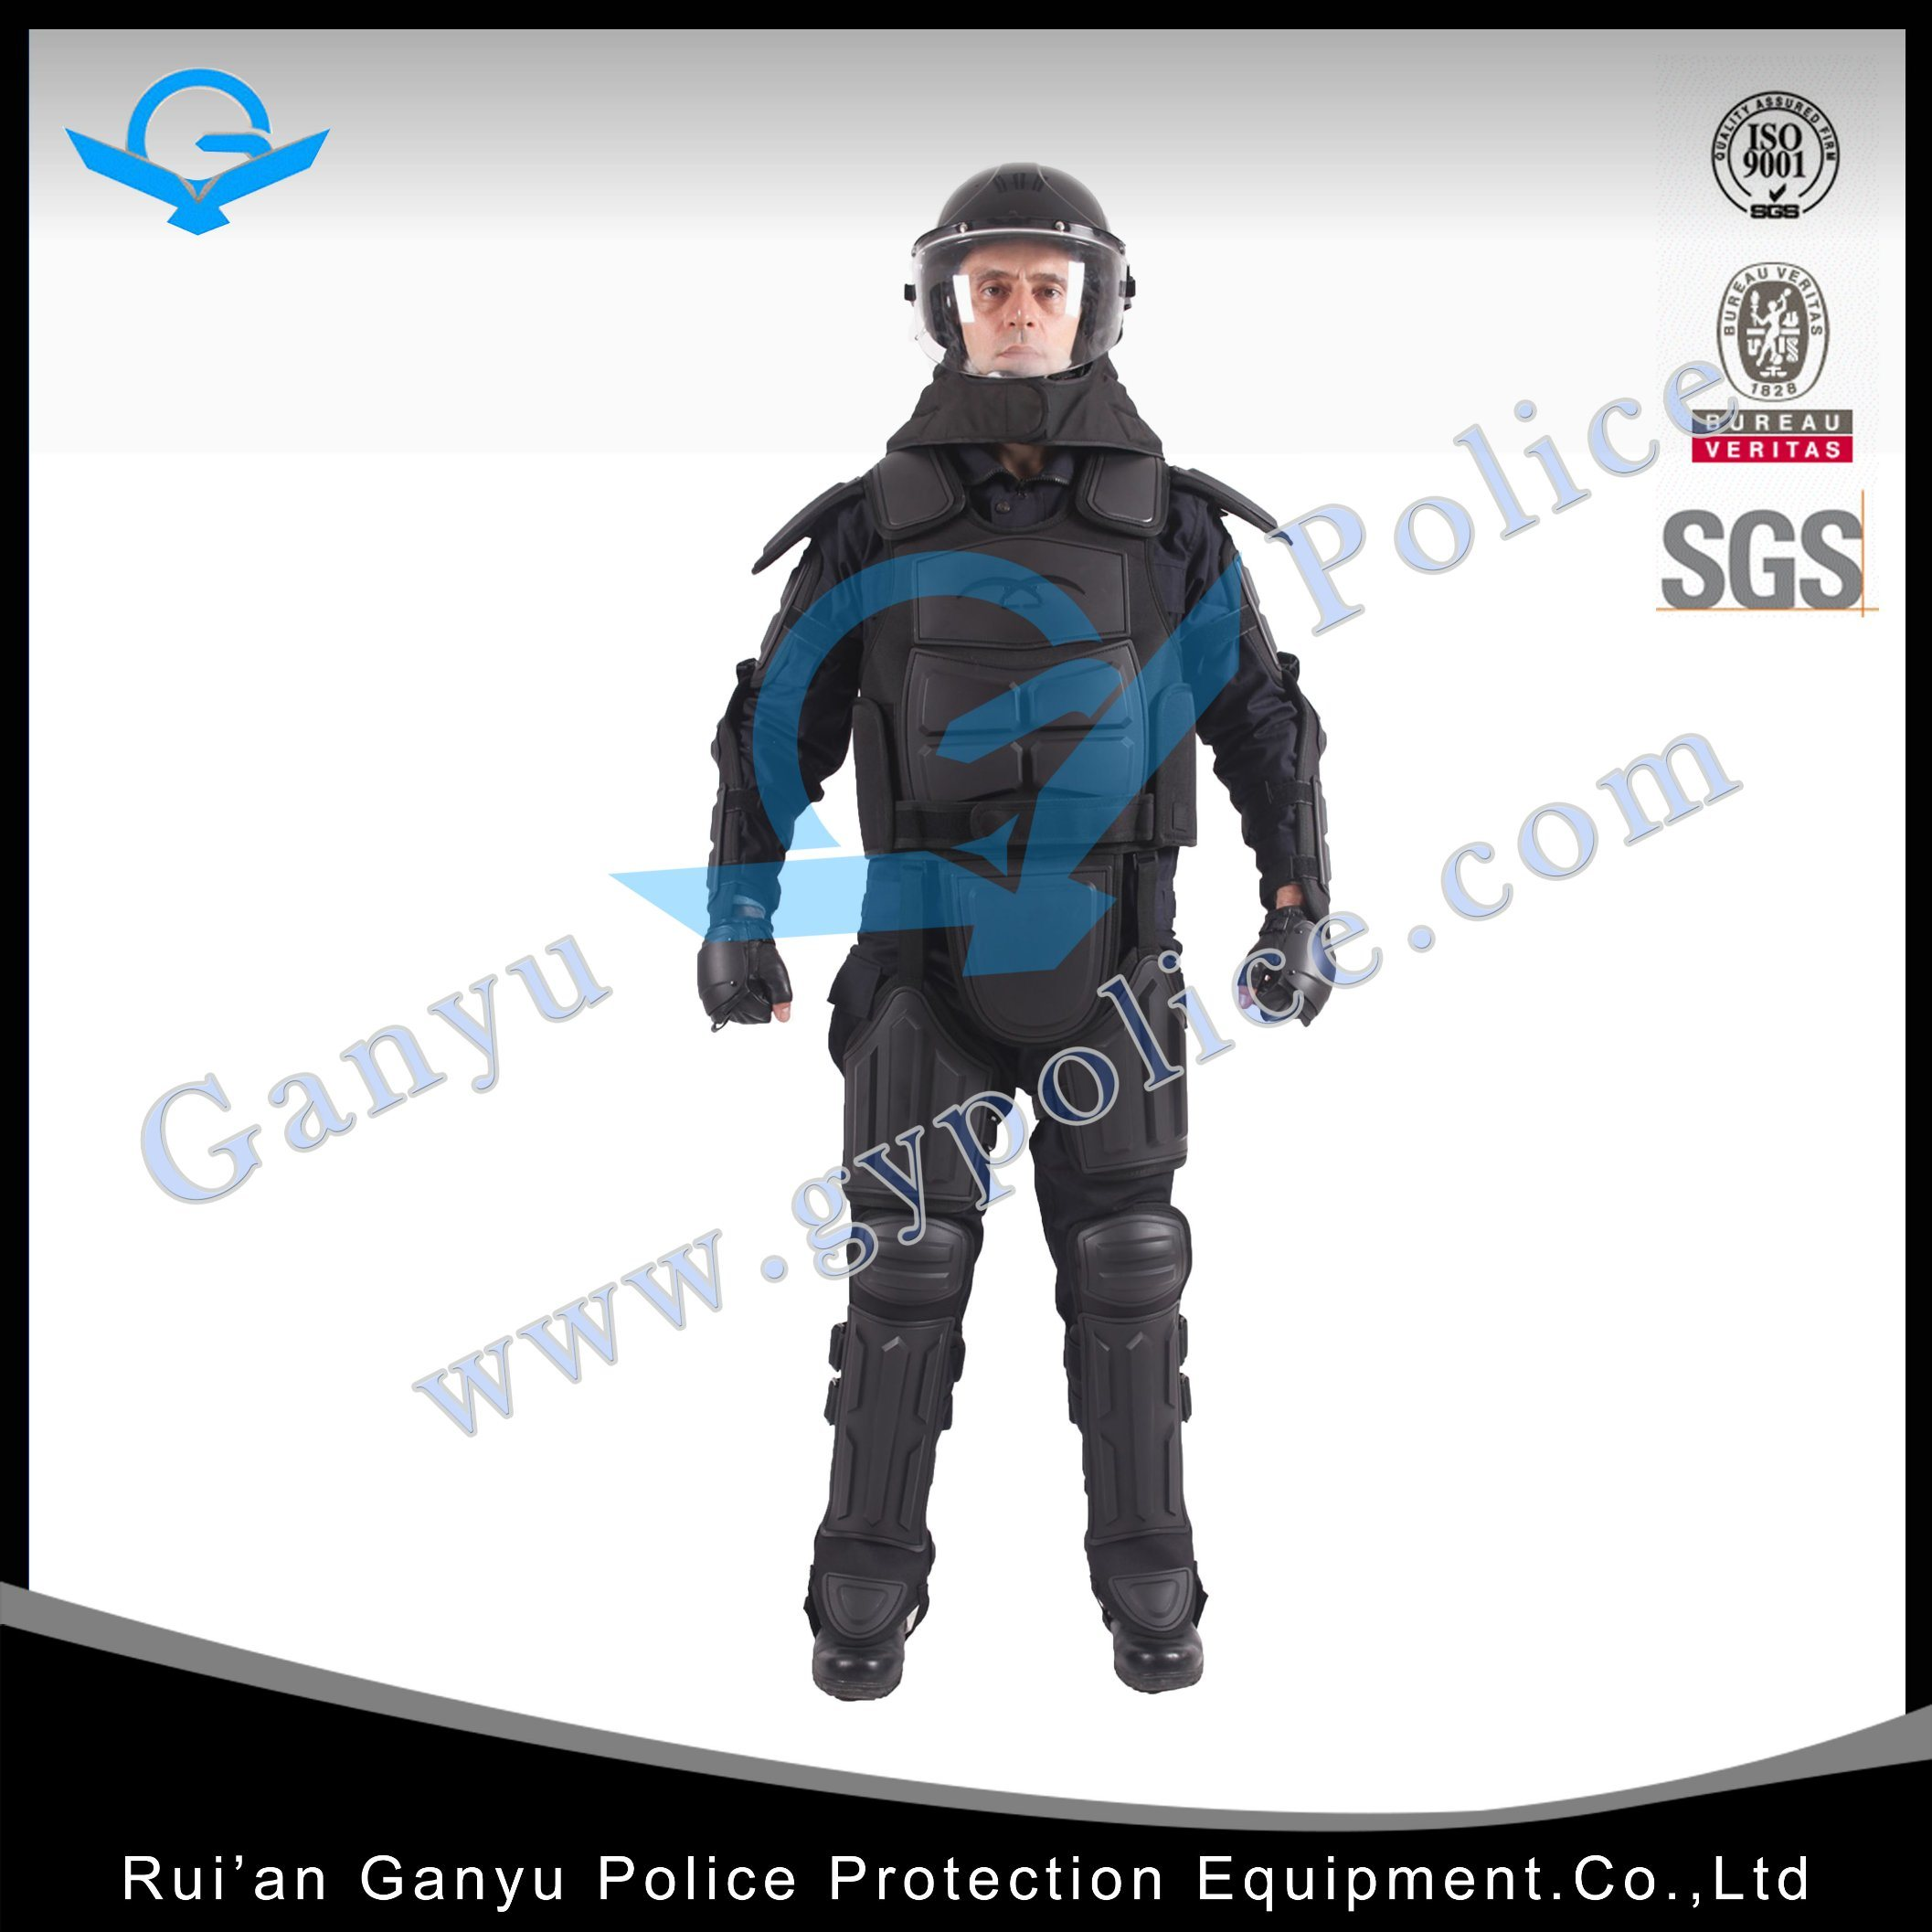 Shoulder Arm Elbow Protector of Anti Riot Suit